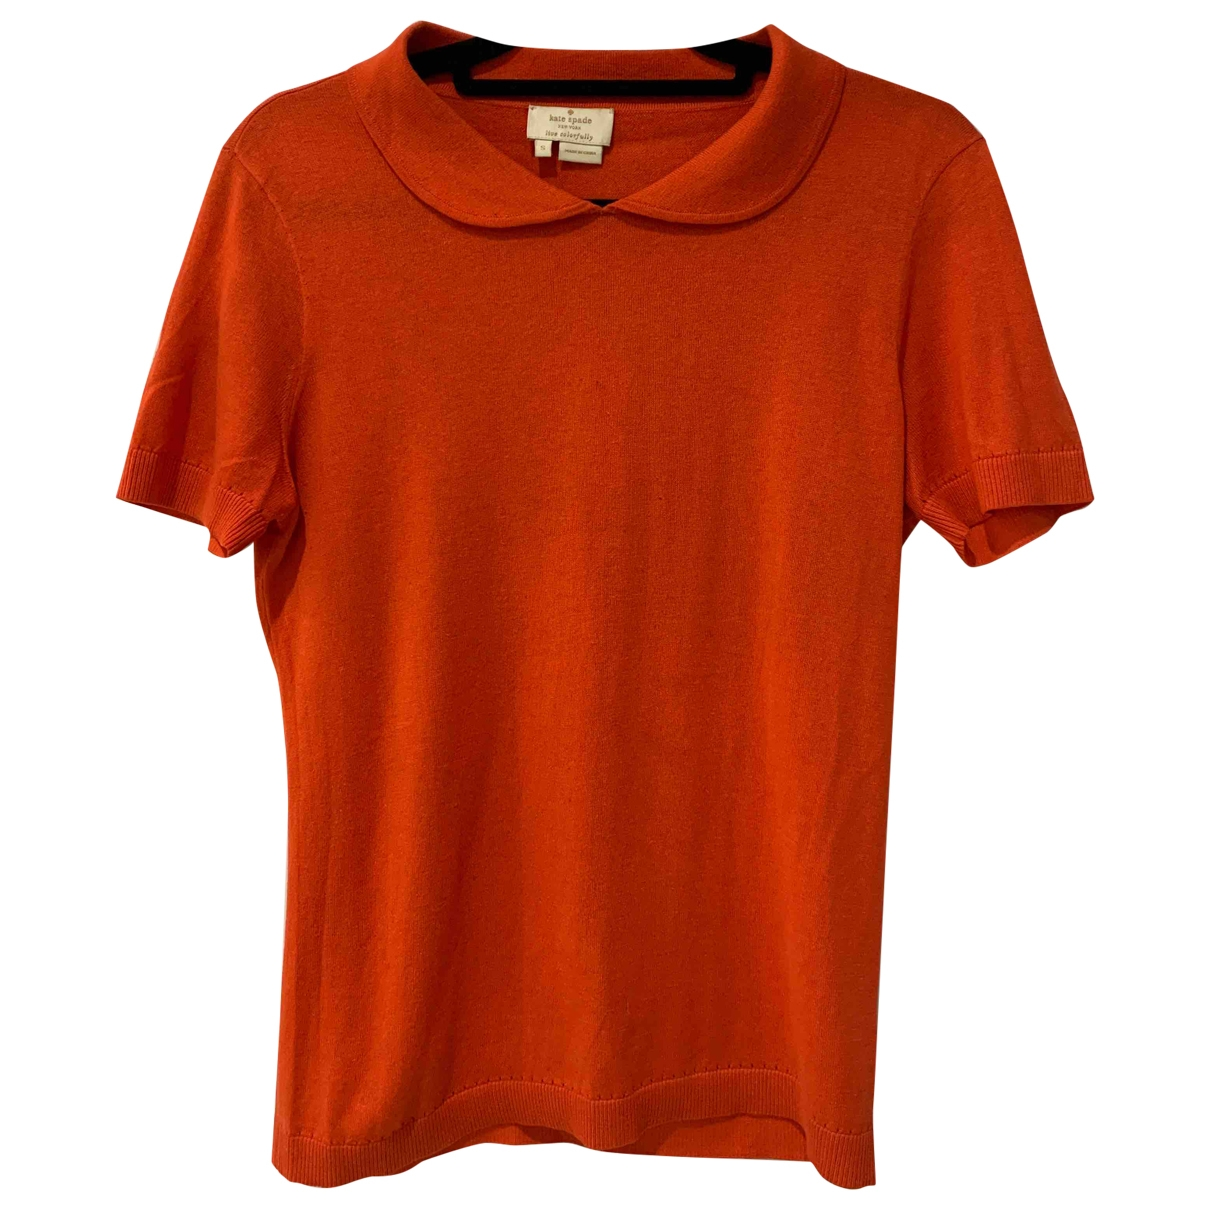 Kate Spade \N Orange Cotton  top for Women S International